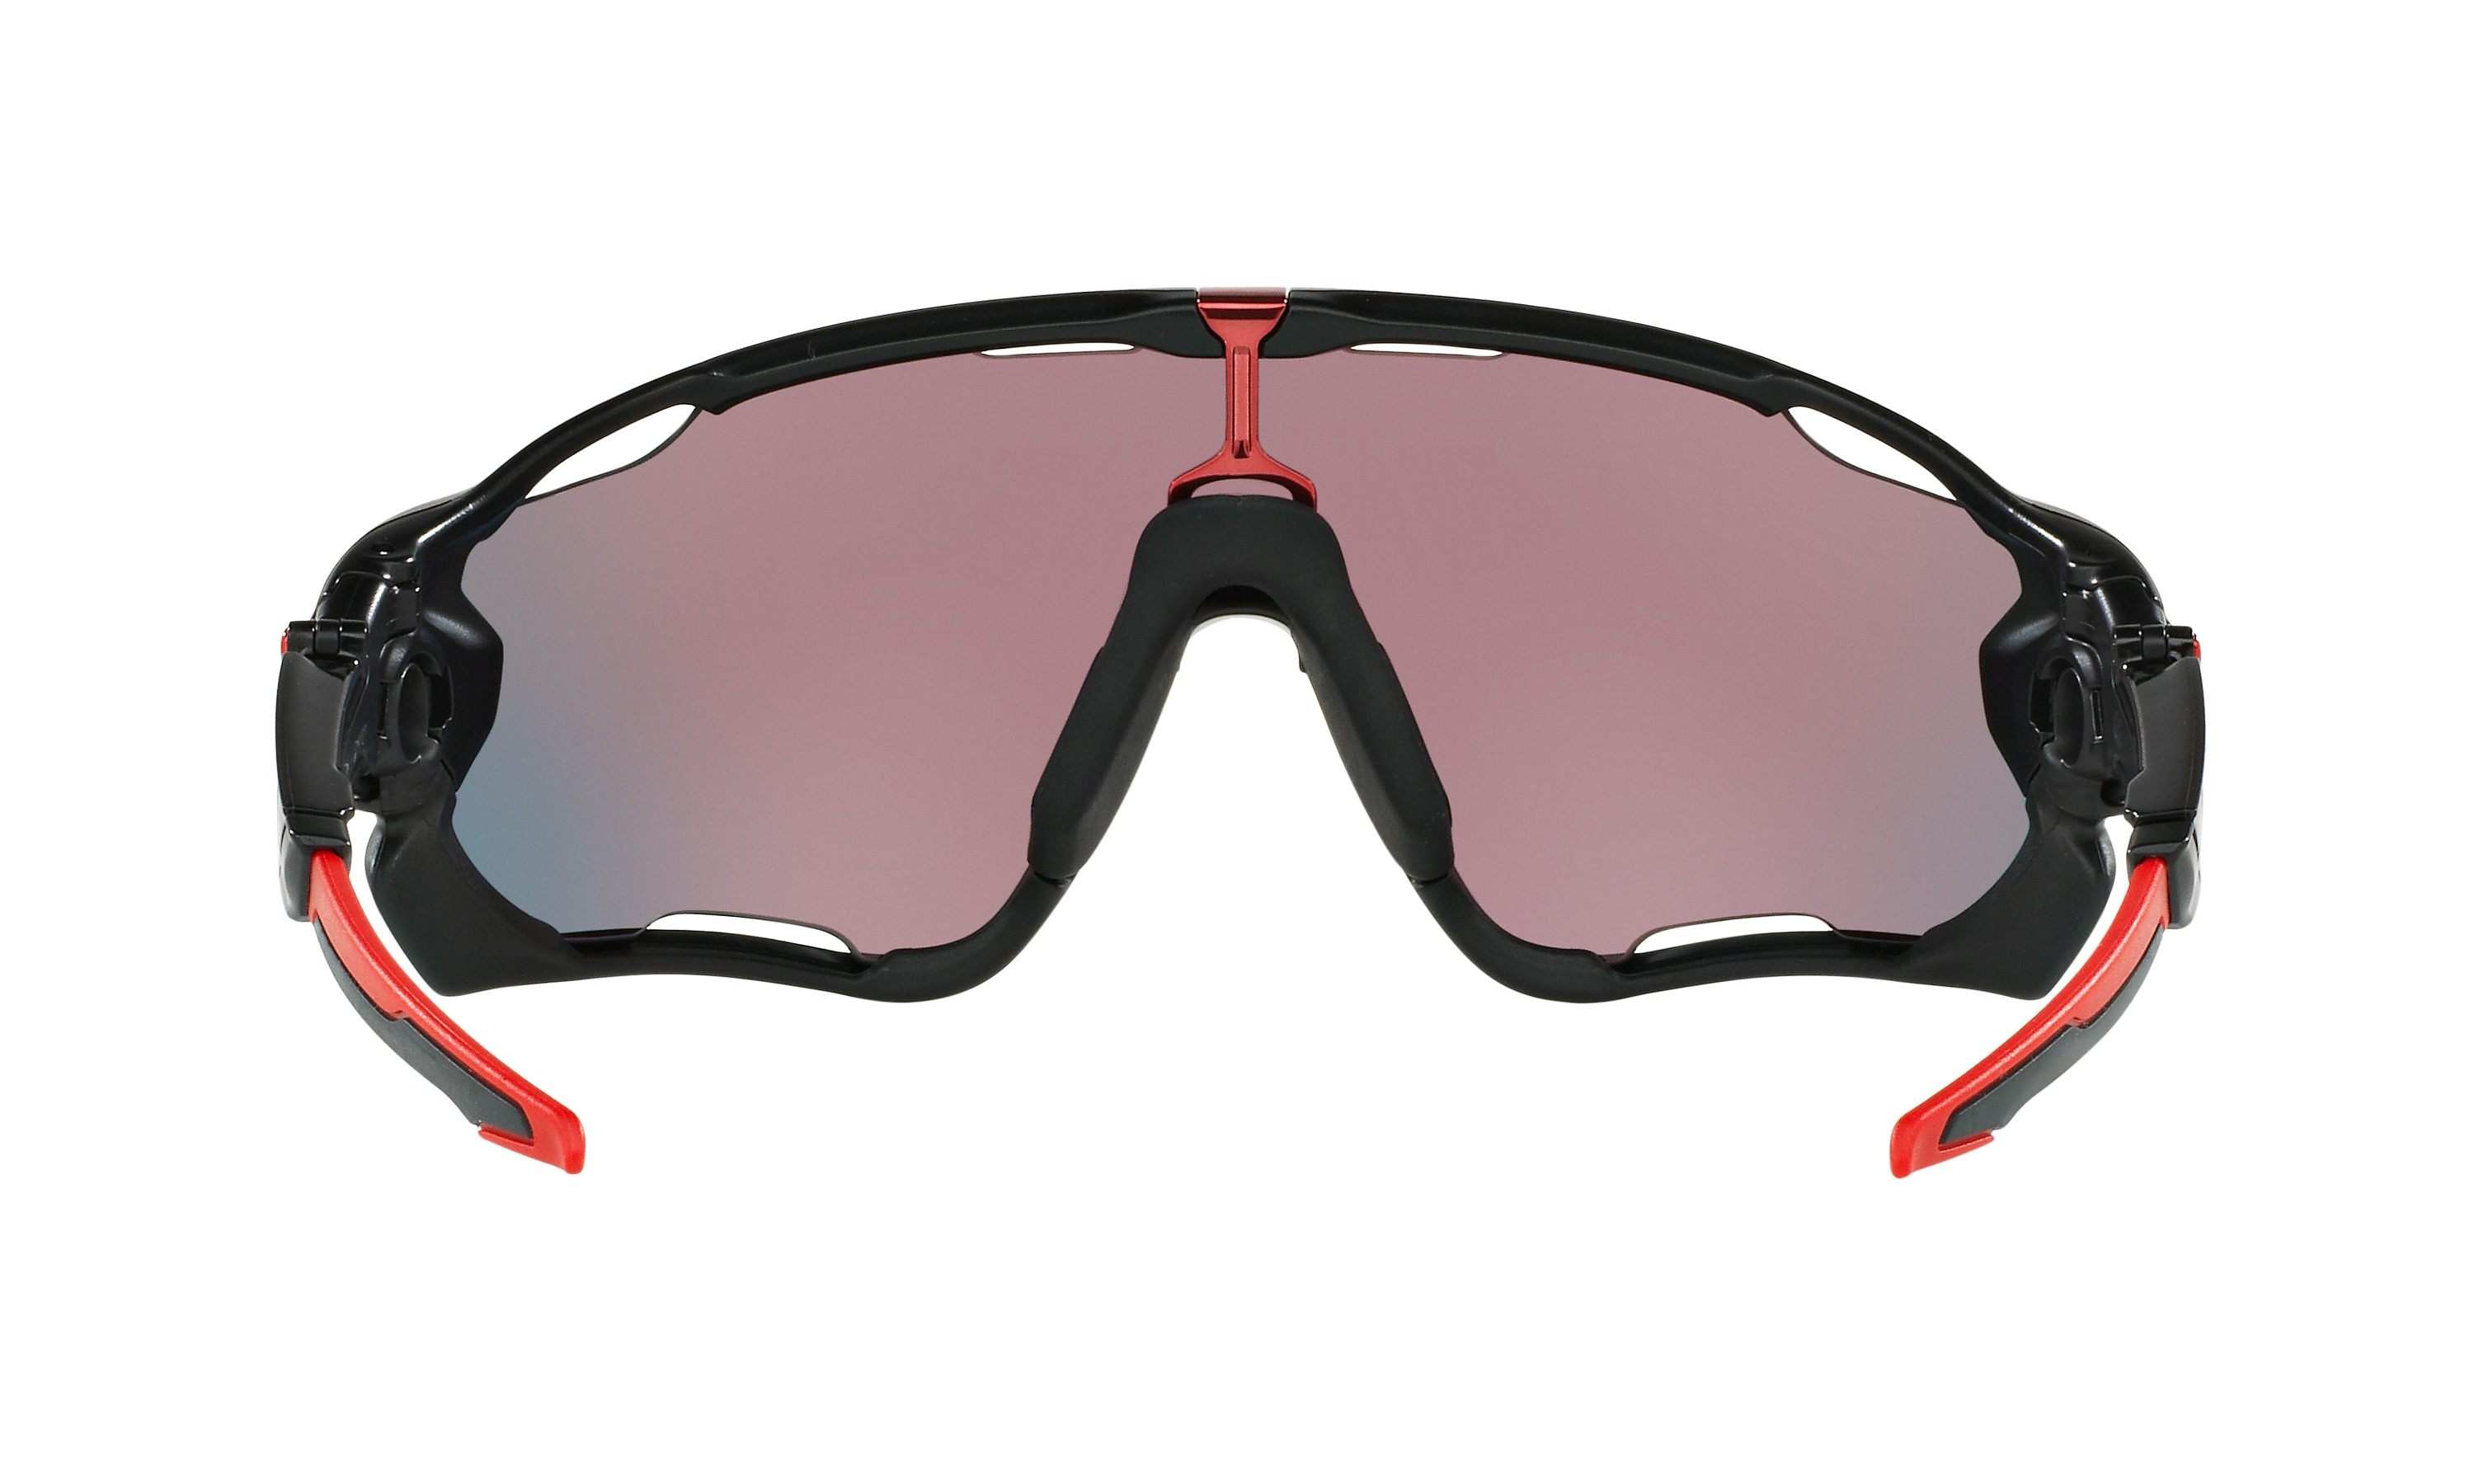 d56667ca9d Oakley Jawbreaker Matte Black Prizm Road Sunglasses Review ...